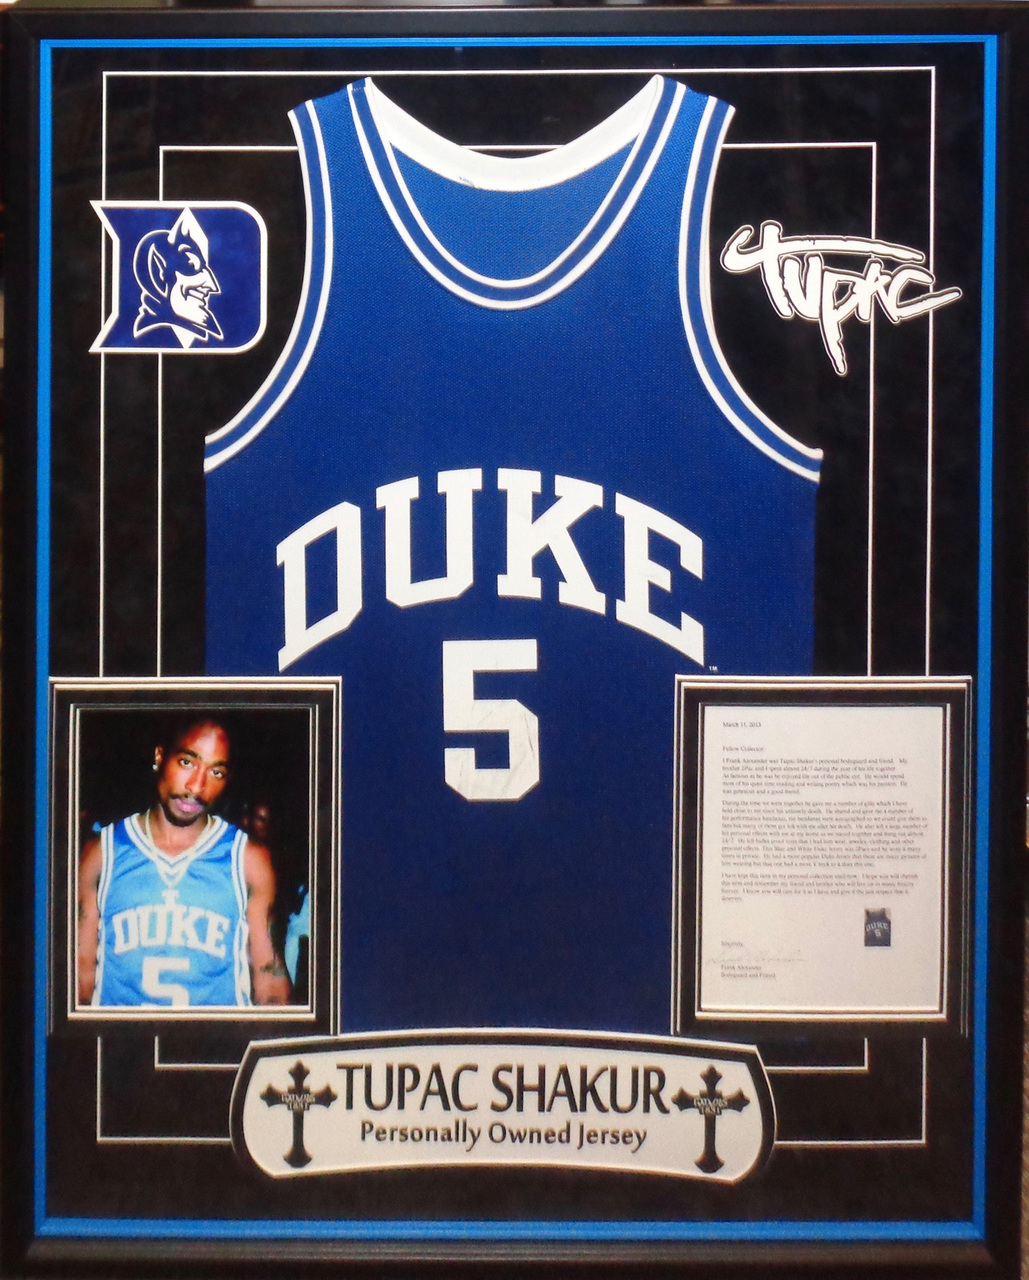 Tupac Shakur Personally Owned Jersey